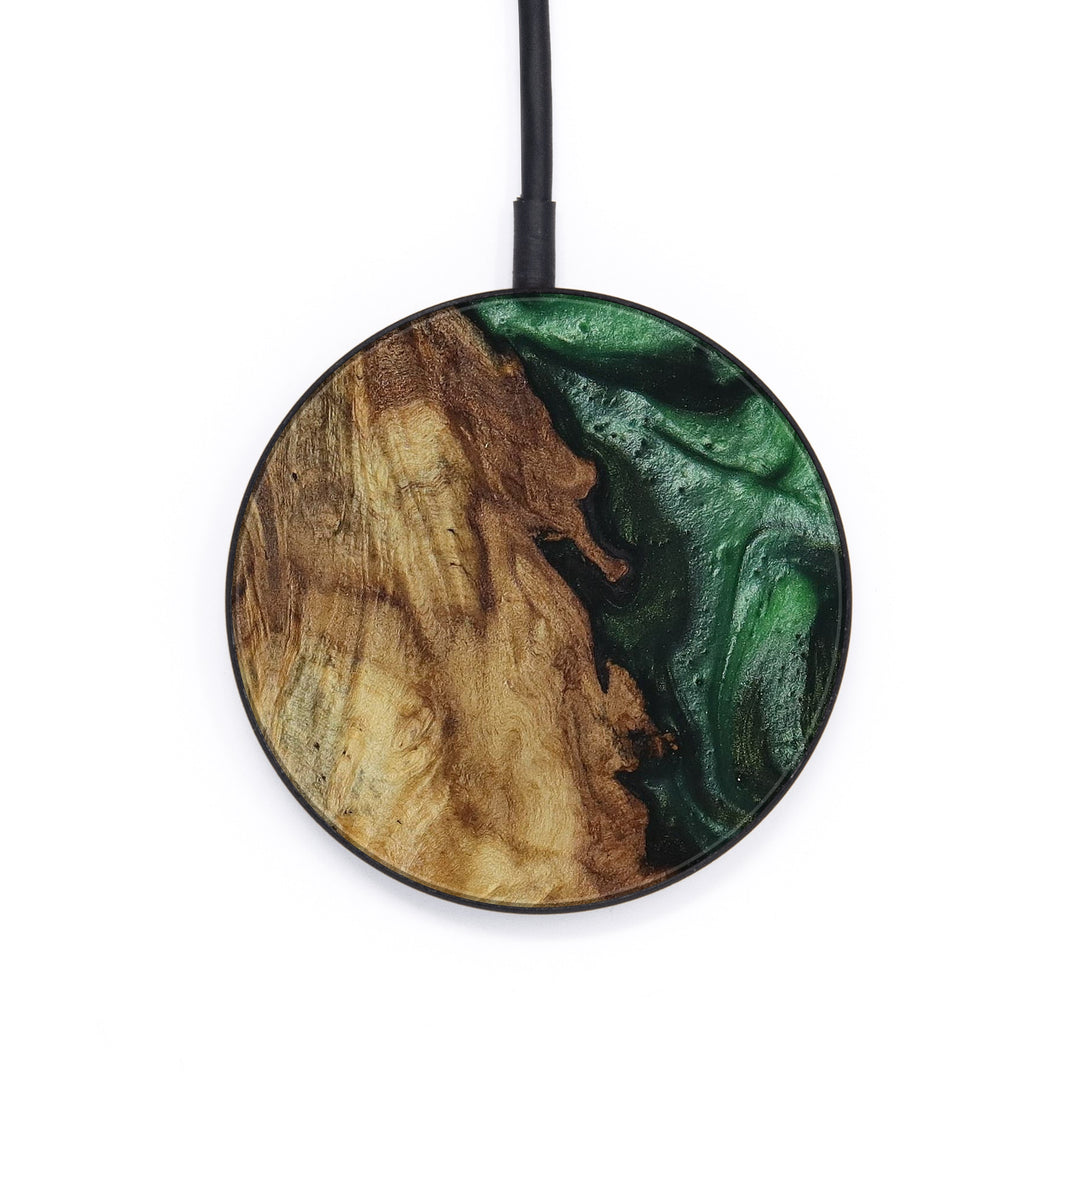 Circle Wood+Resin Wireless Charger - Charles (Dark Green, 400150)